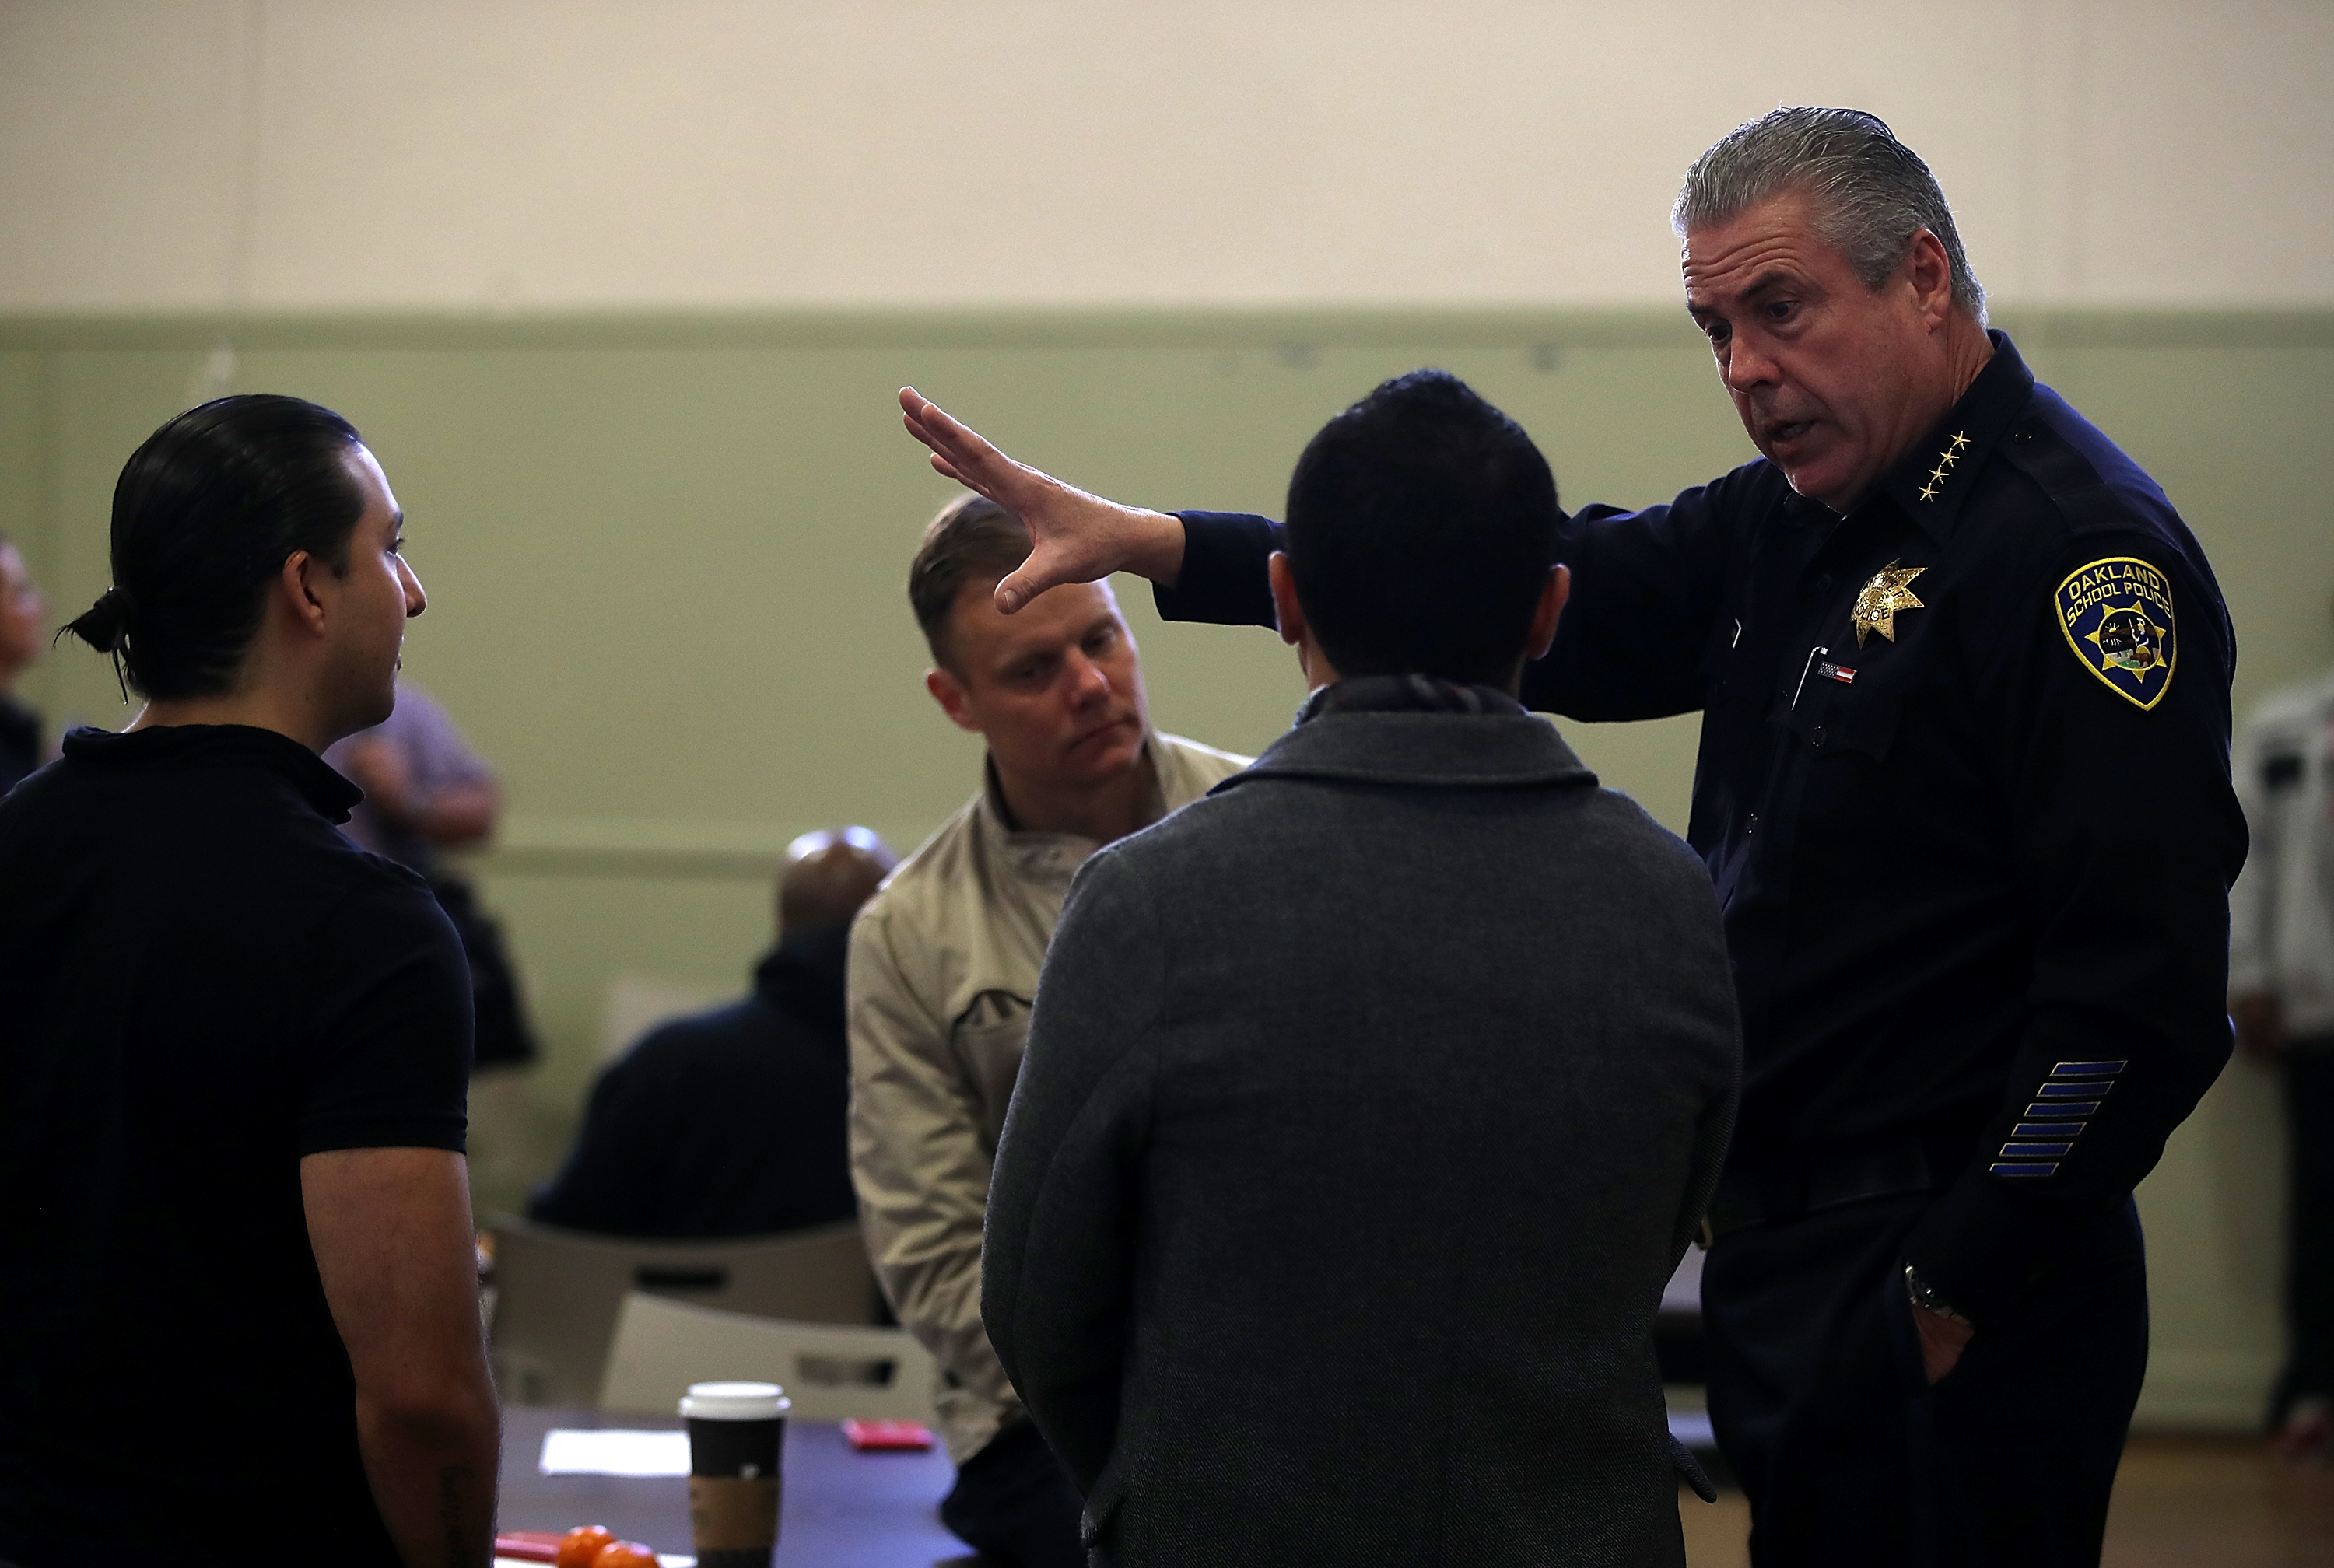 Oakland Schools Police chief Jeff Godown (R) speaks to school staff during an active shooter training session on Feb. 16, 2018 in Oakland, Calif. Godown supported the school district's decision to disband the police force, even though it could end his job.